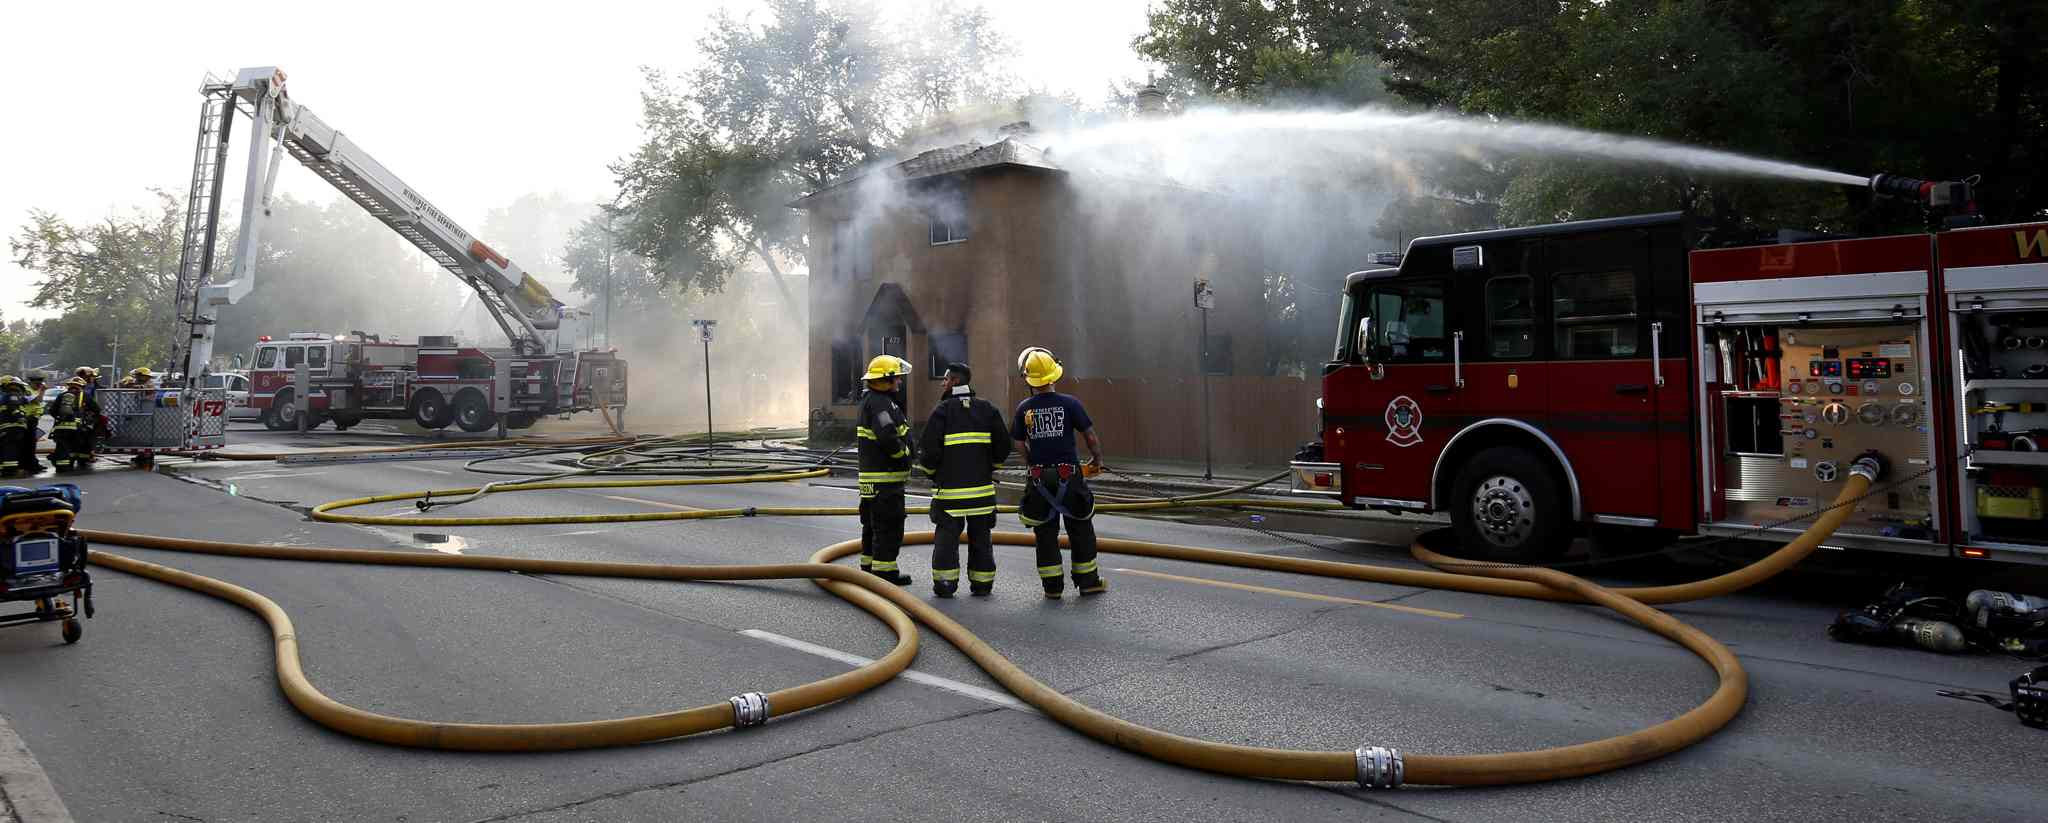 In a survey a few years ago, about half of city residents were aware of firefighters' dual roles.